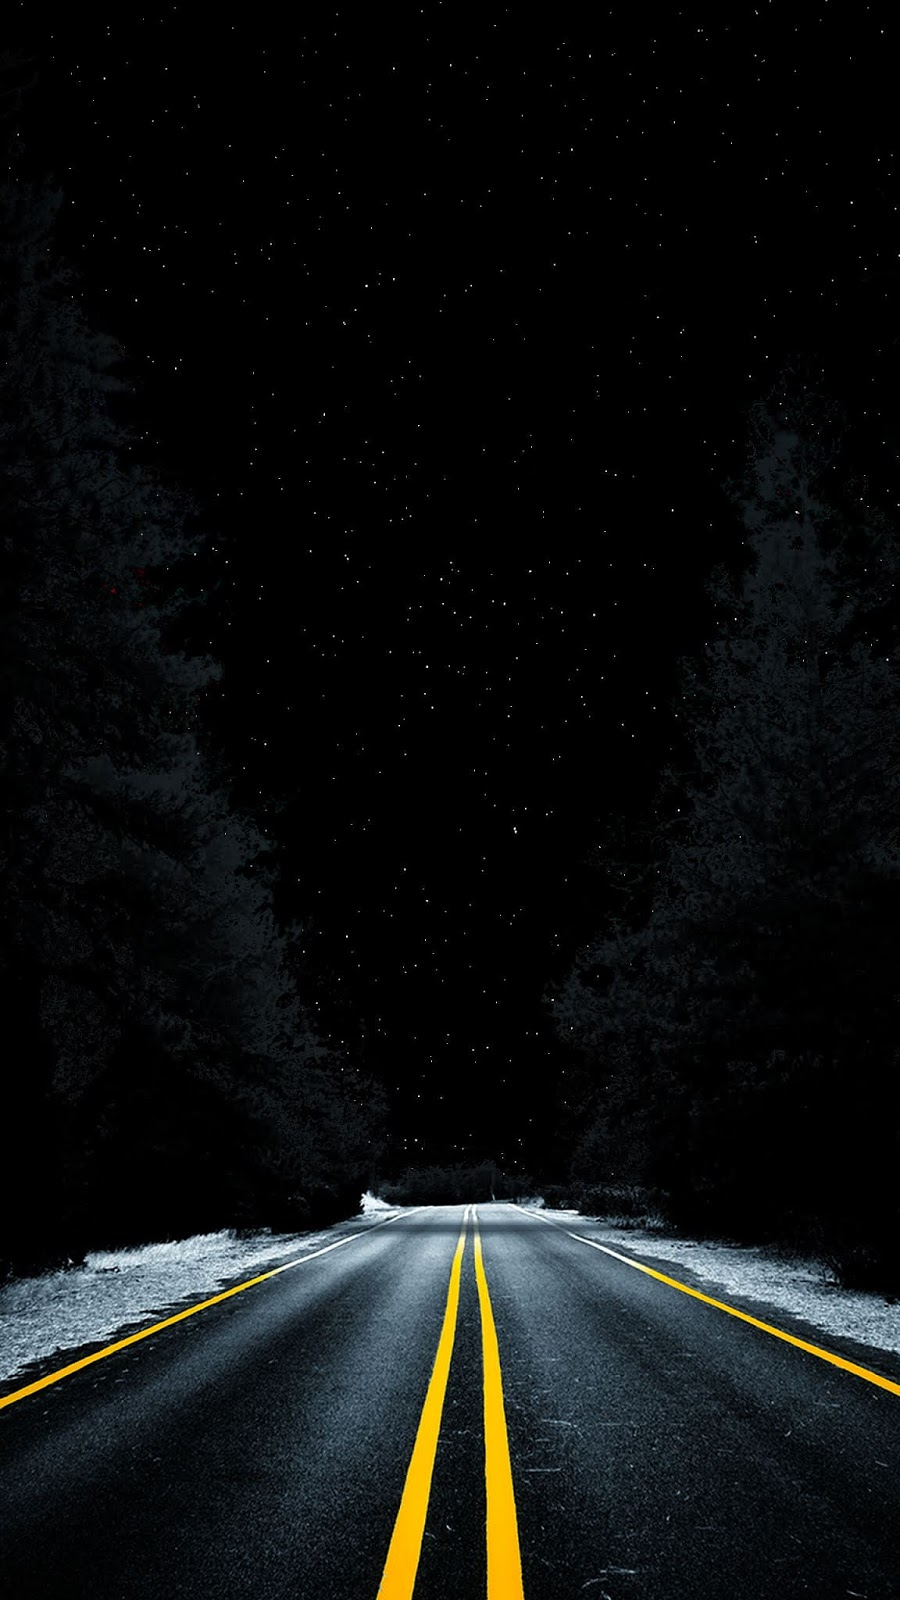 Road into space (MKBHD wallpaper variant)